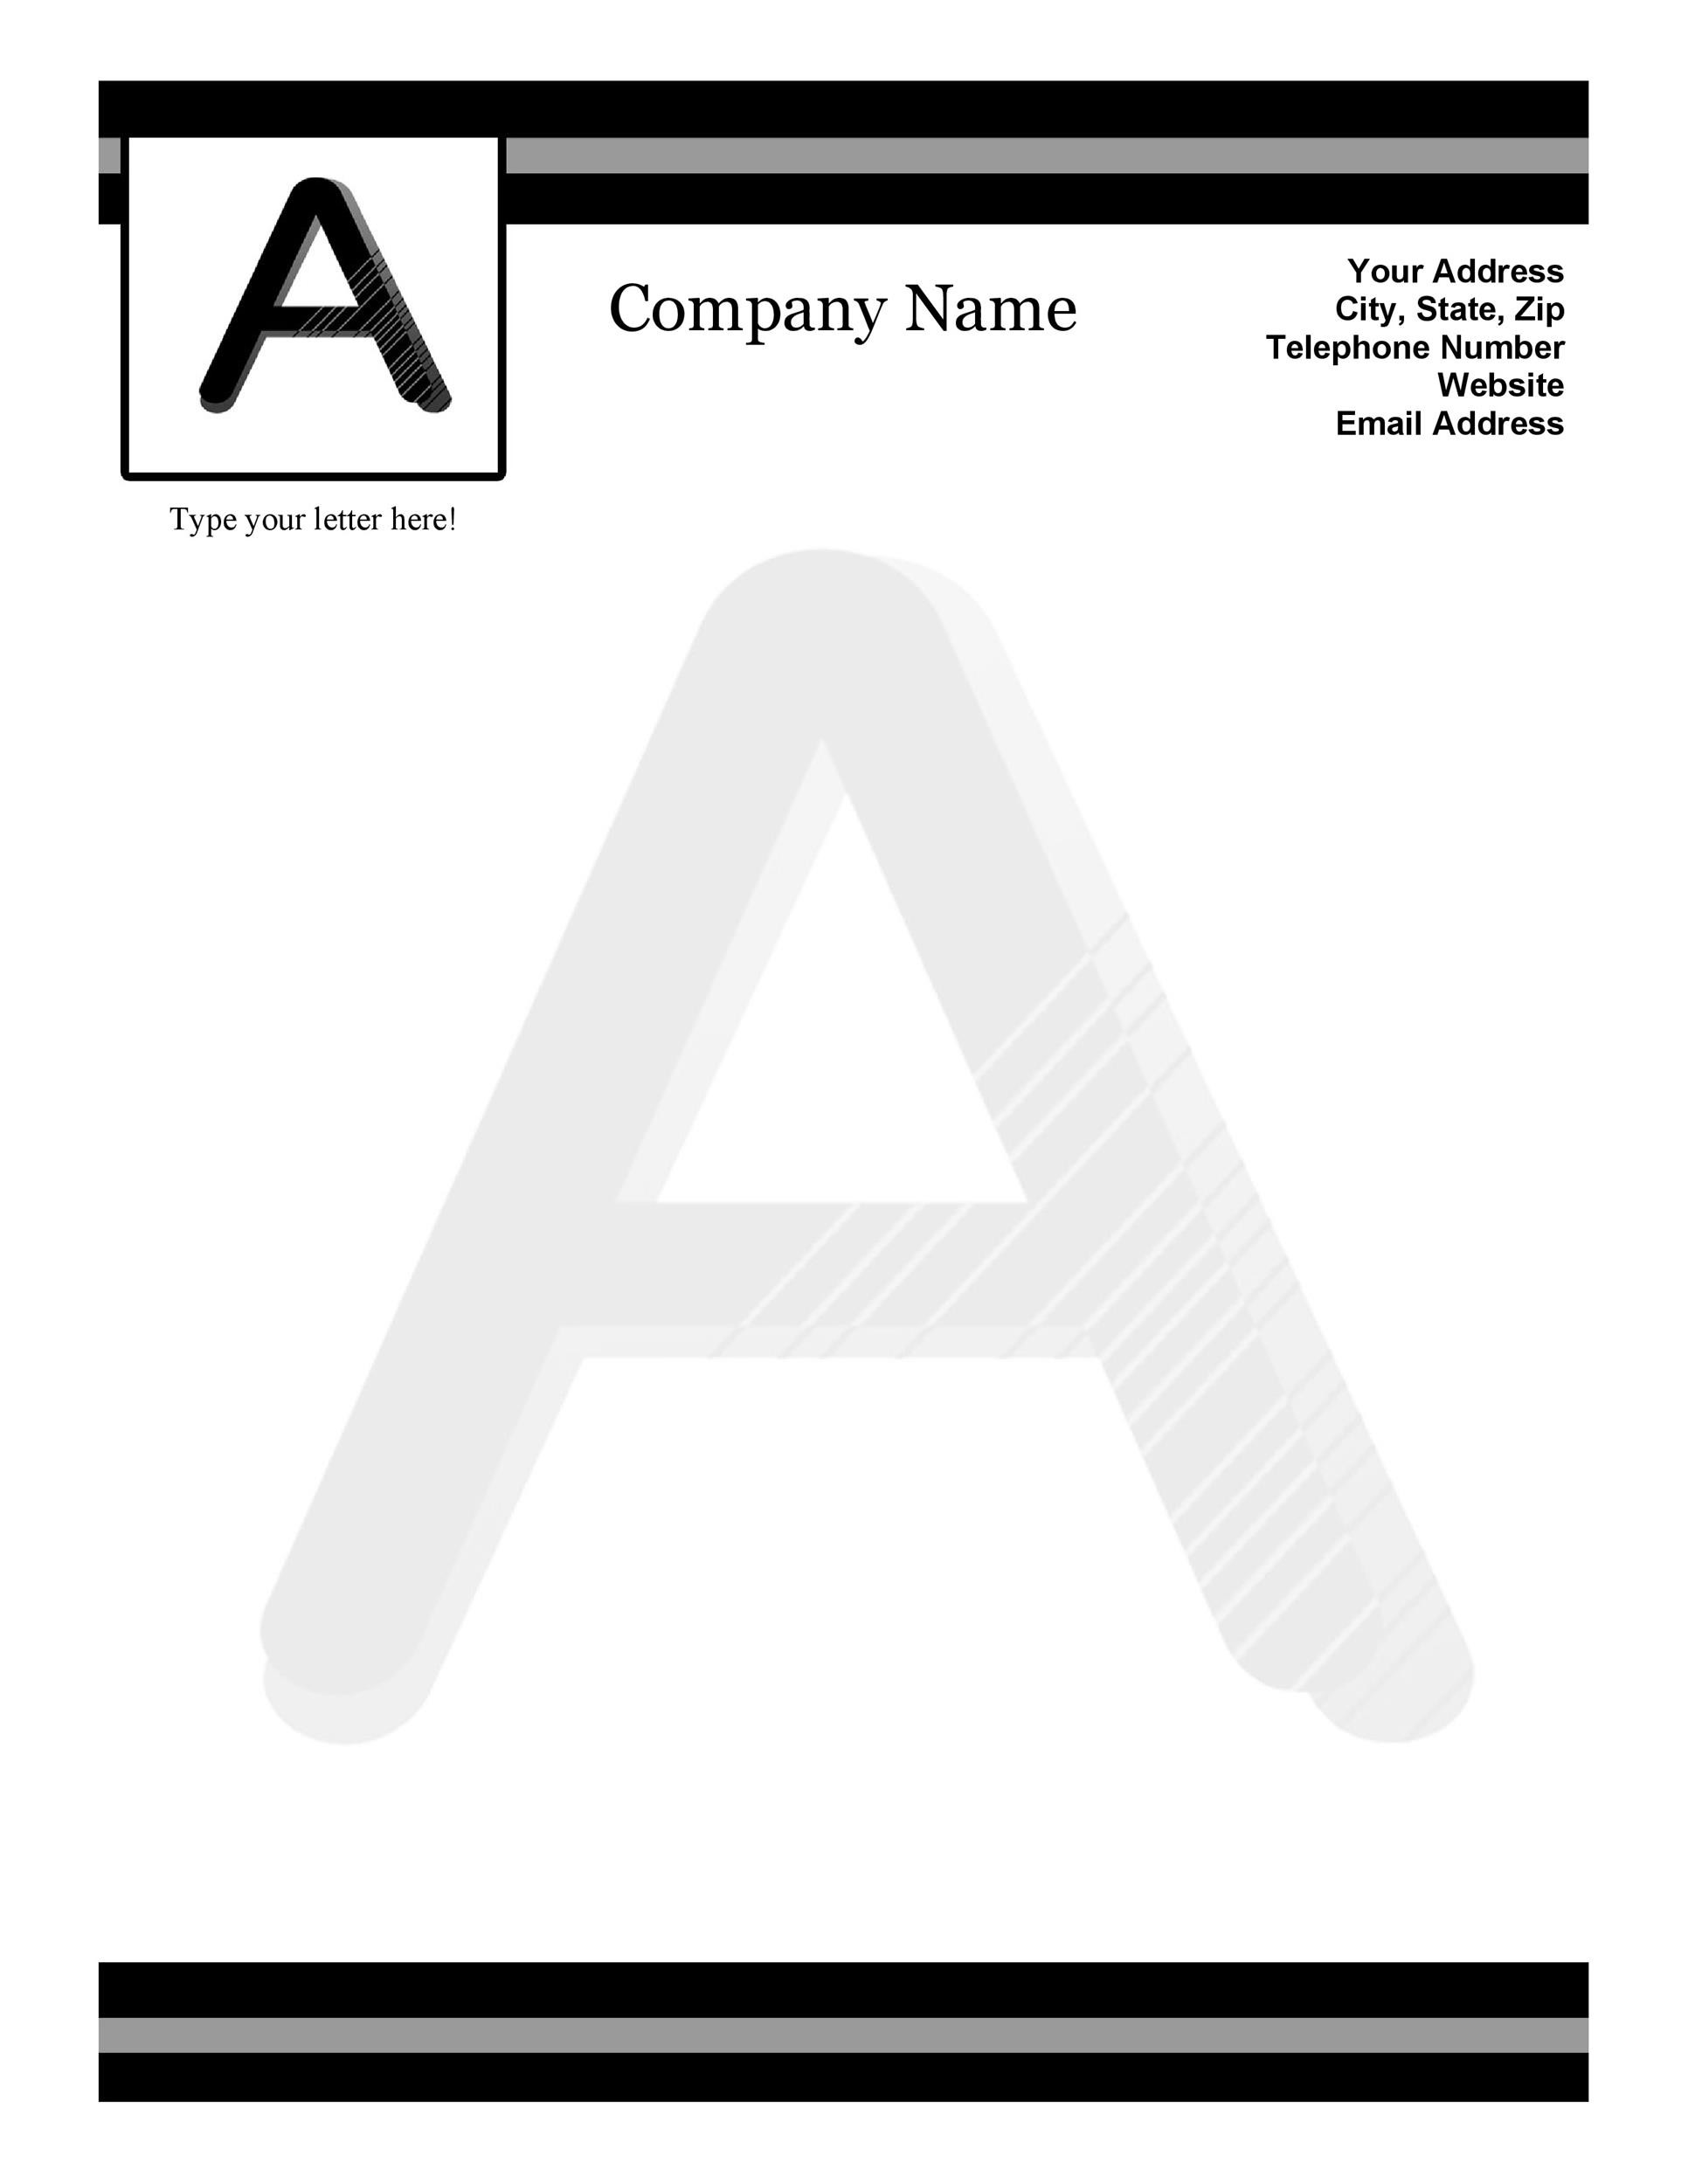 45+ Free Letterhead Templates & Examples (Company